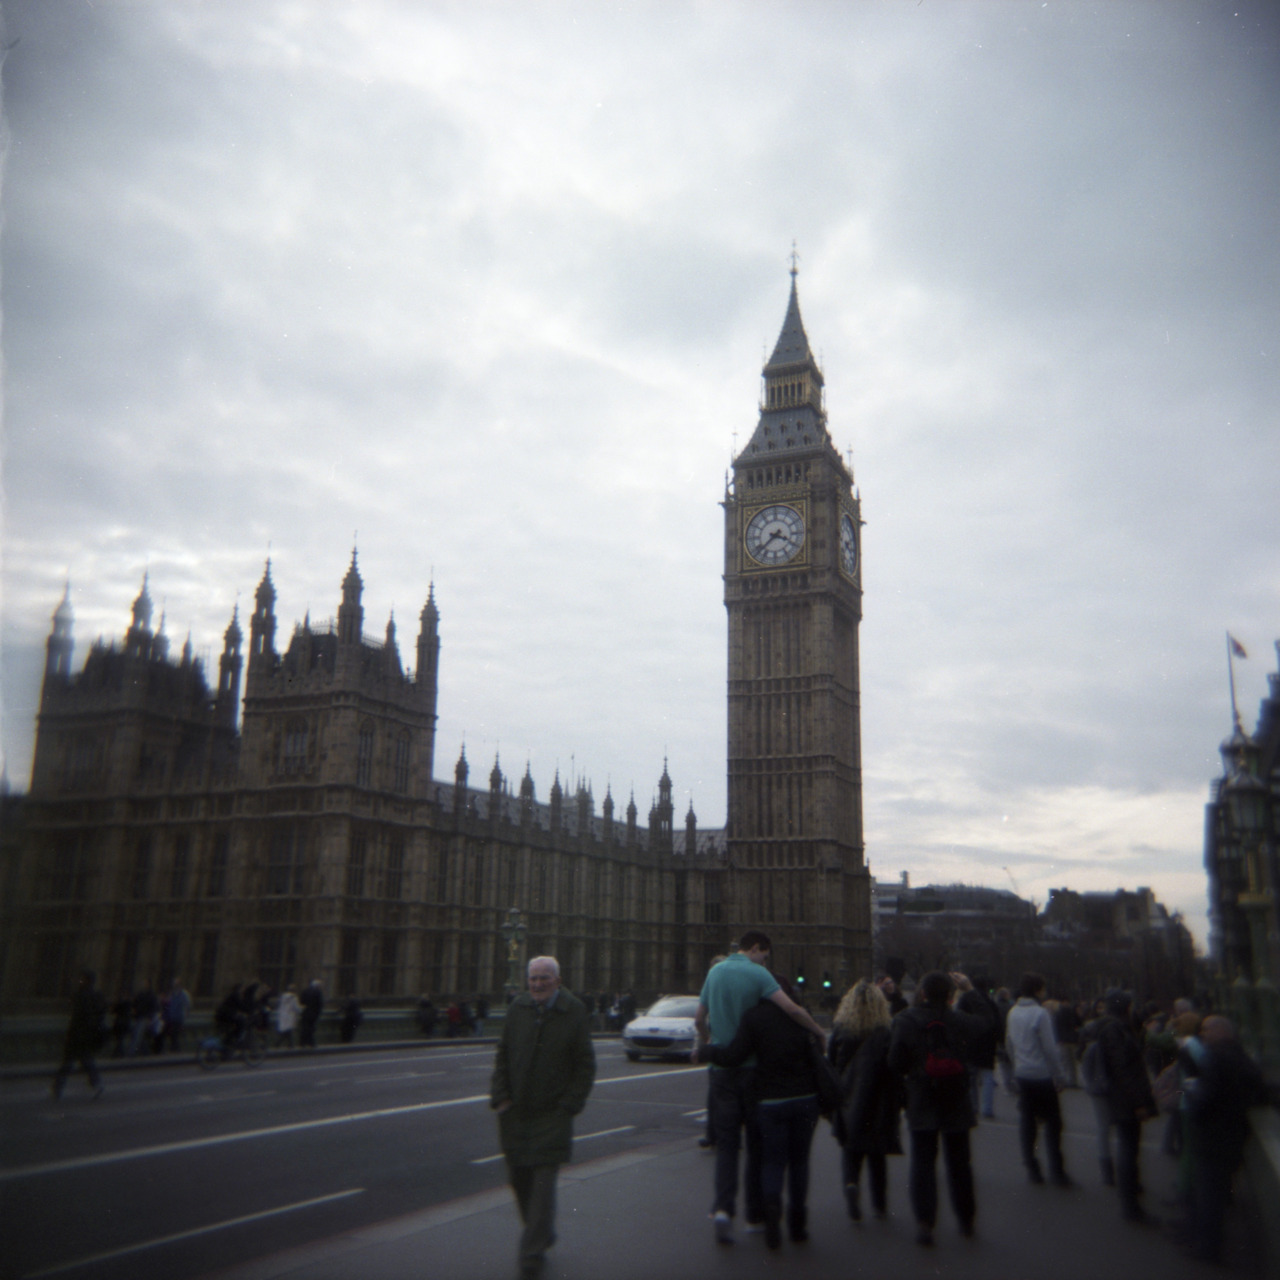 Big Ben, London Holga, Fuji PRO400